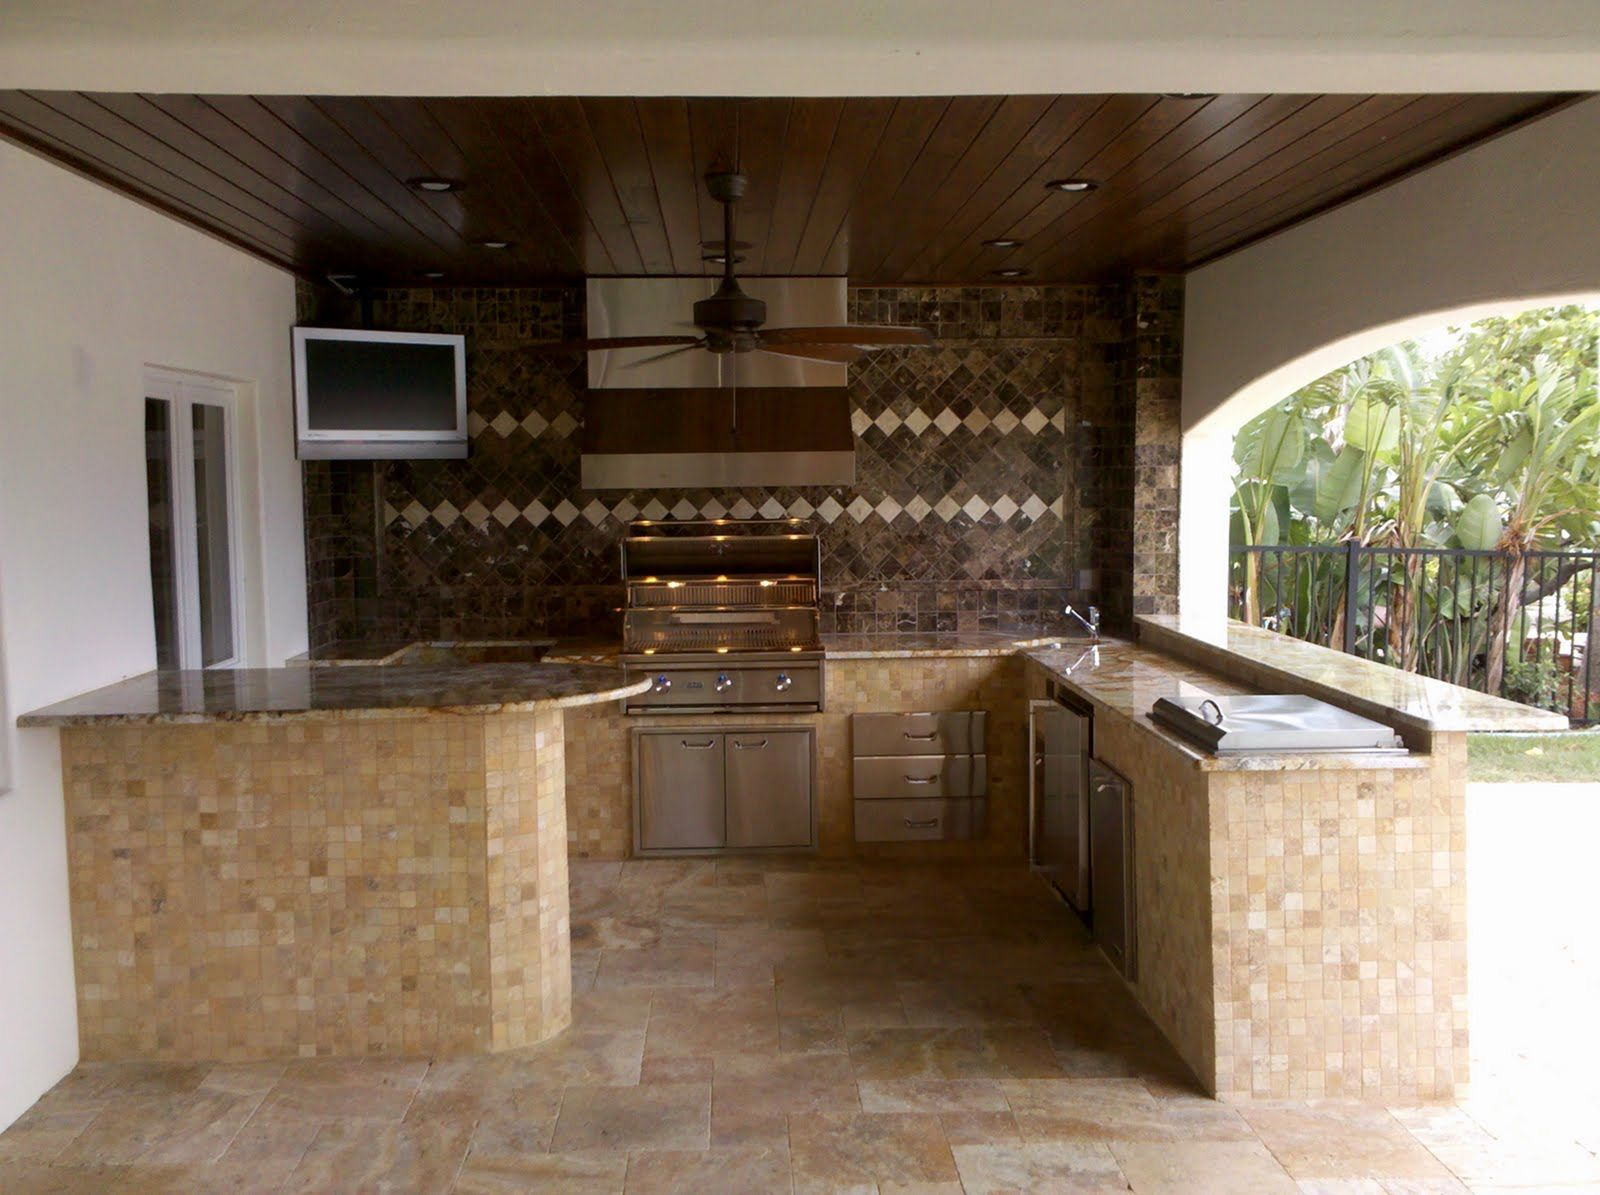 Diy outdoor kitchen kits  Amazing  Best Outdoor Backyard Kitchen Design Ideas For Your Home